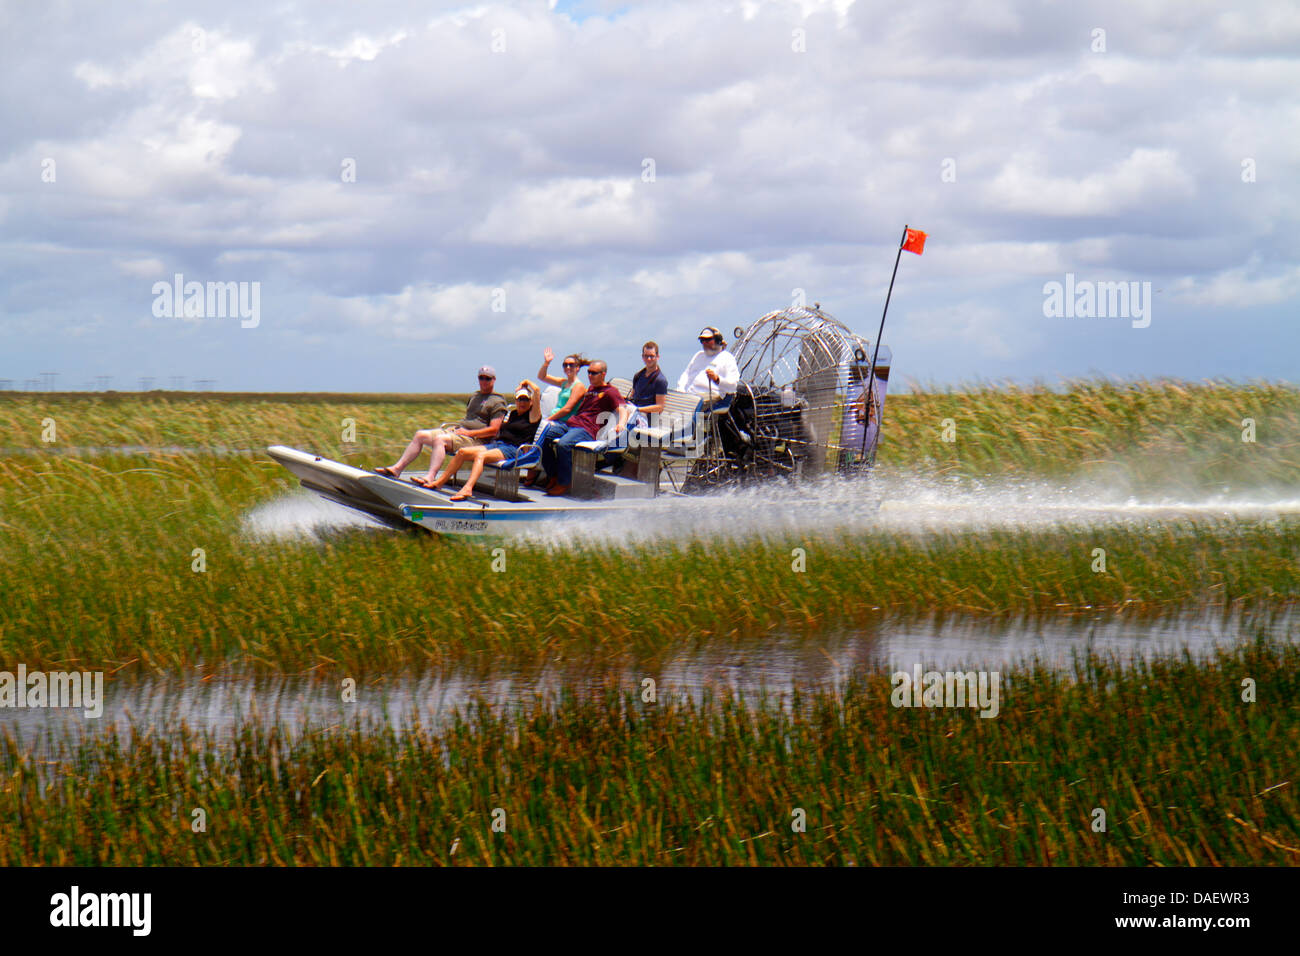 Fort Lauderdale Ft. Florida Weston Sawgrass Recreation Park Everglades riders airboat ride guide pilot freshwater - Stock Image